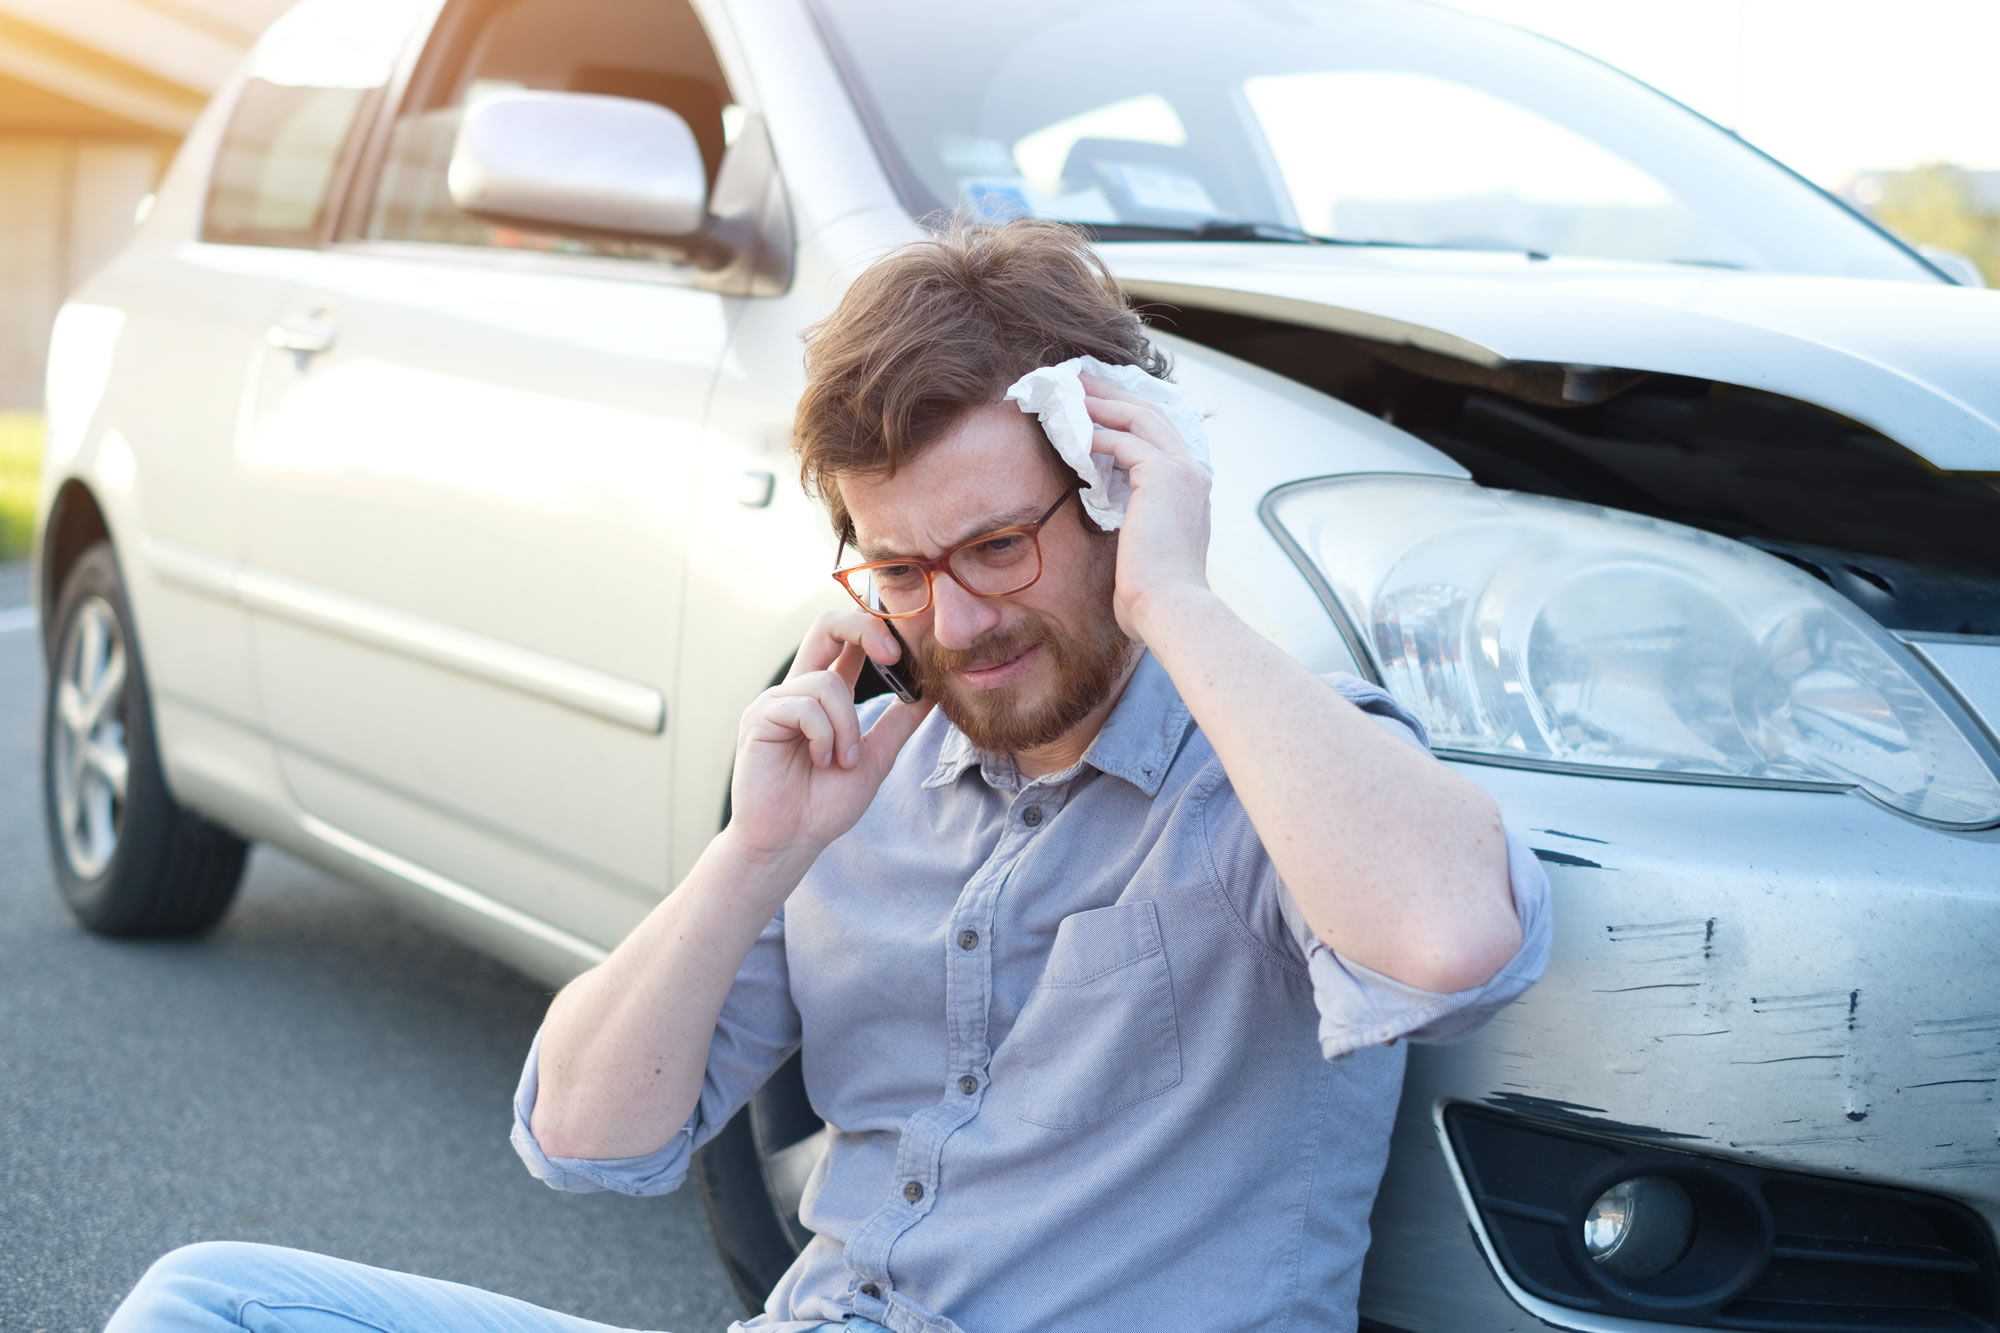 Road Traffic Collision - Car Injury - auto accident claims